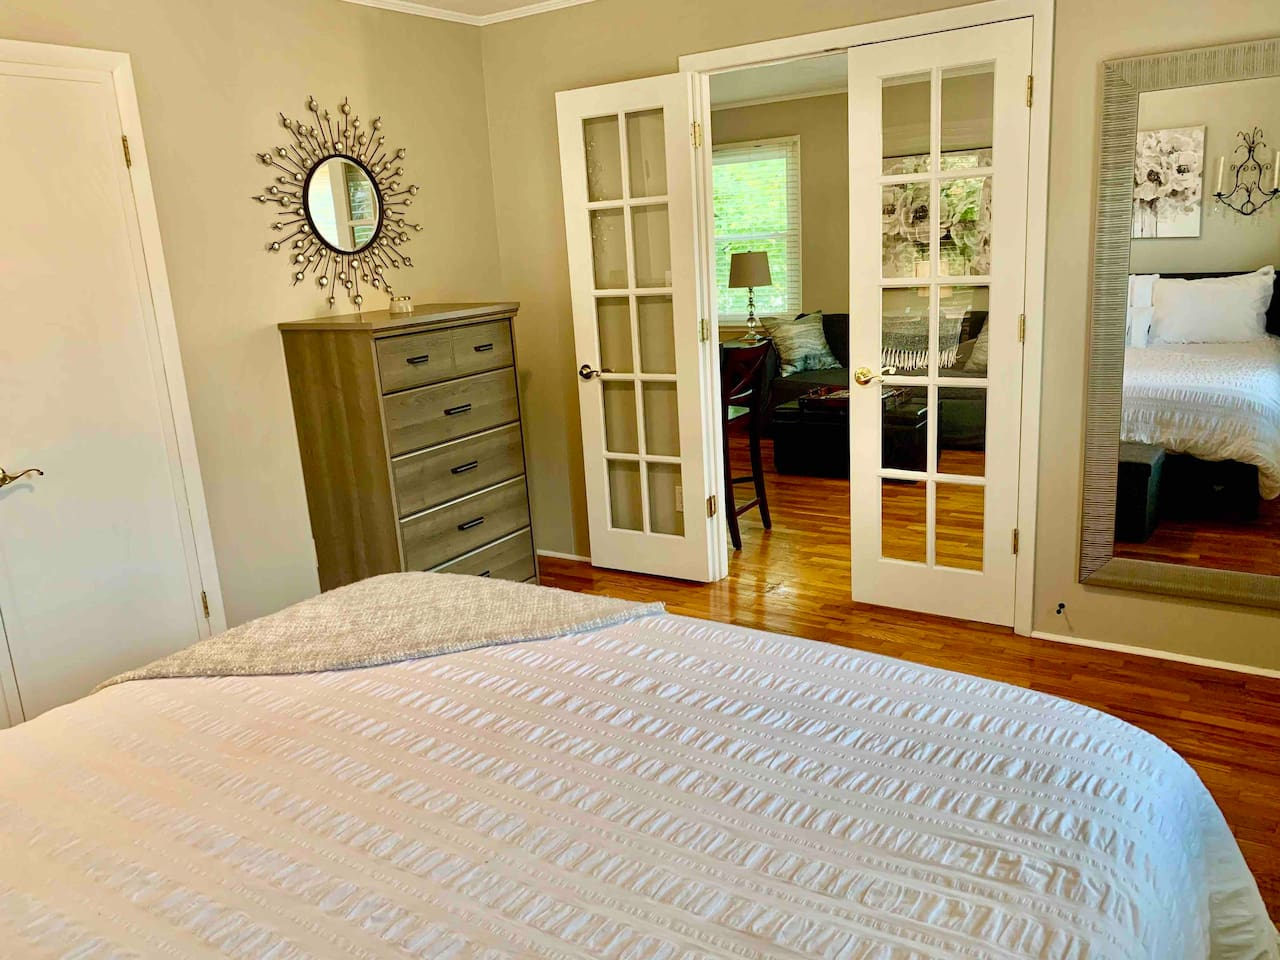 Top floor KING tempurpedic bed nesting with a birds eye view of the water and Mt Baldhead makes this nest the perfect place to enjoy a romantic stay in the heart of downtown Saugatuck!